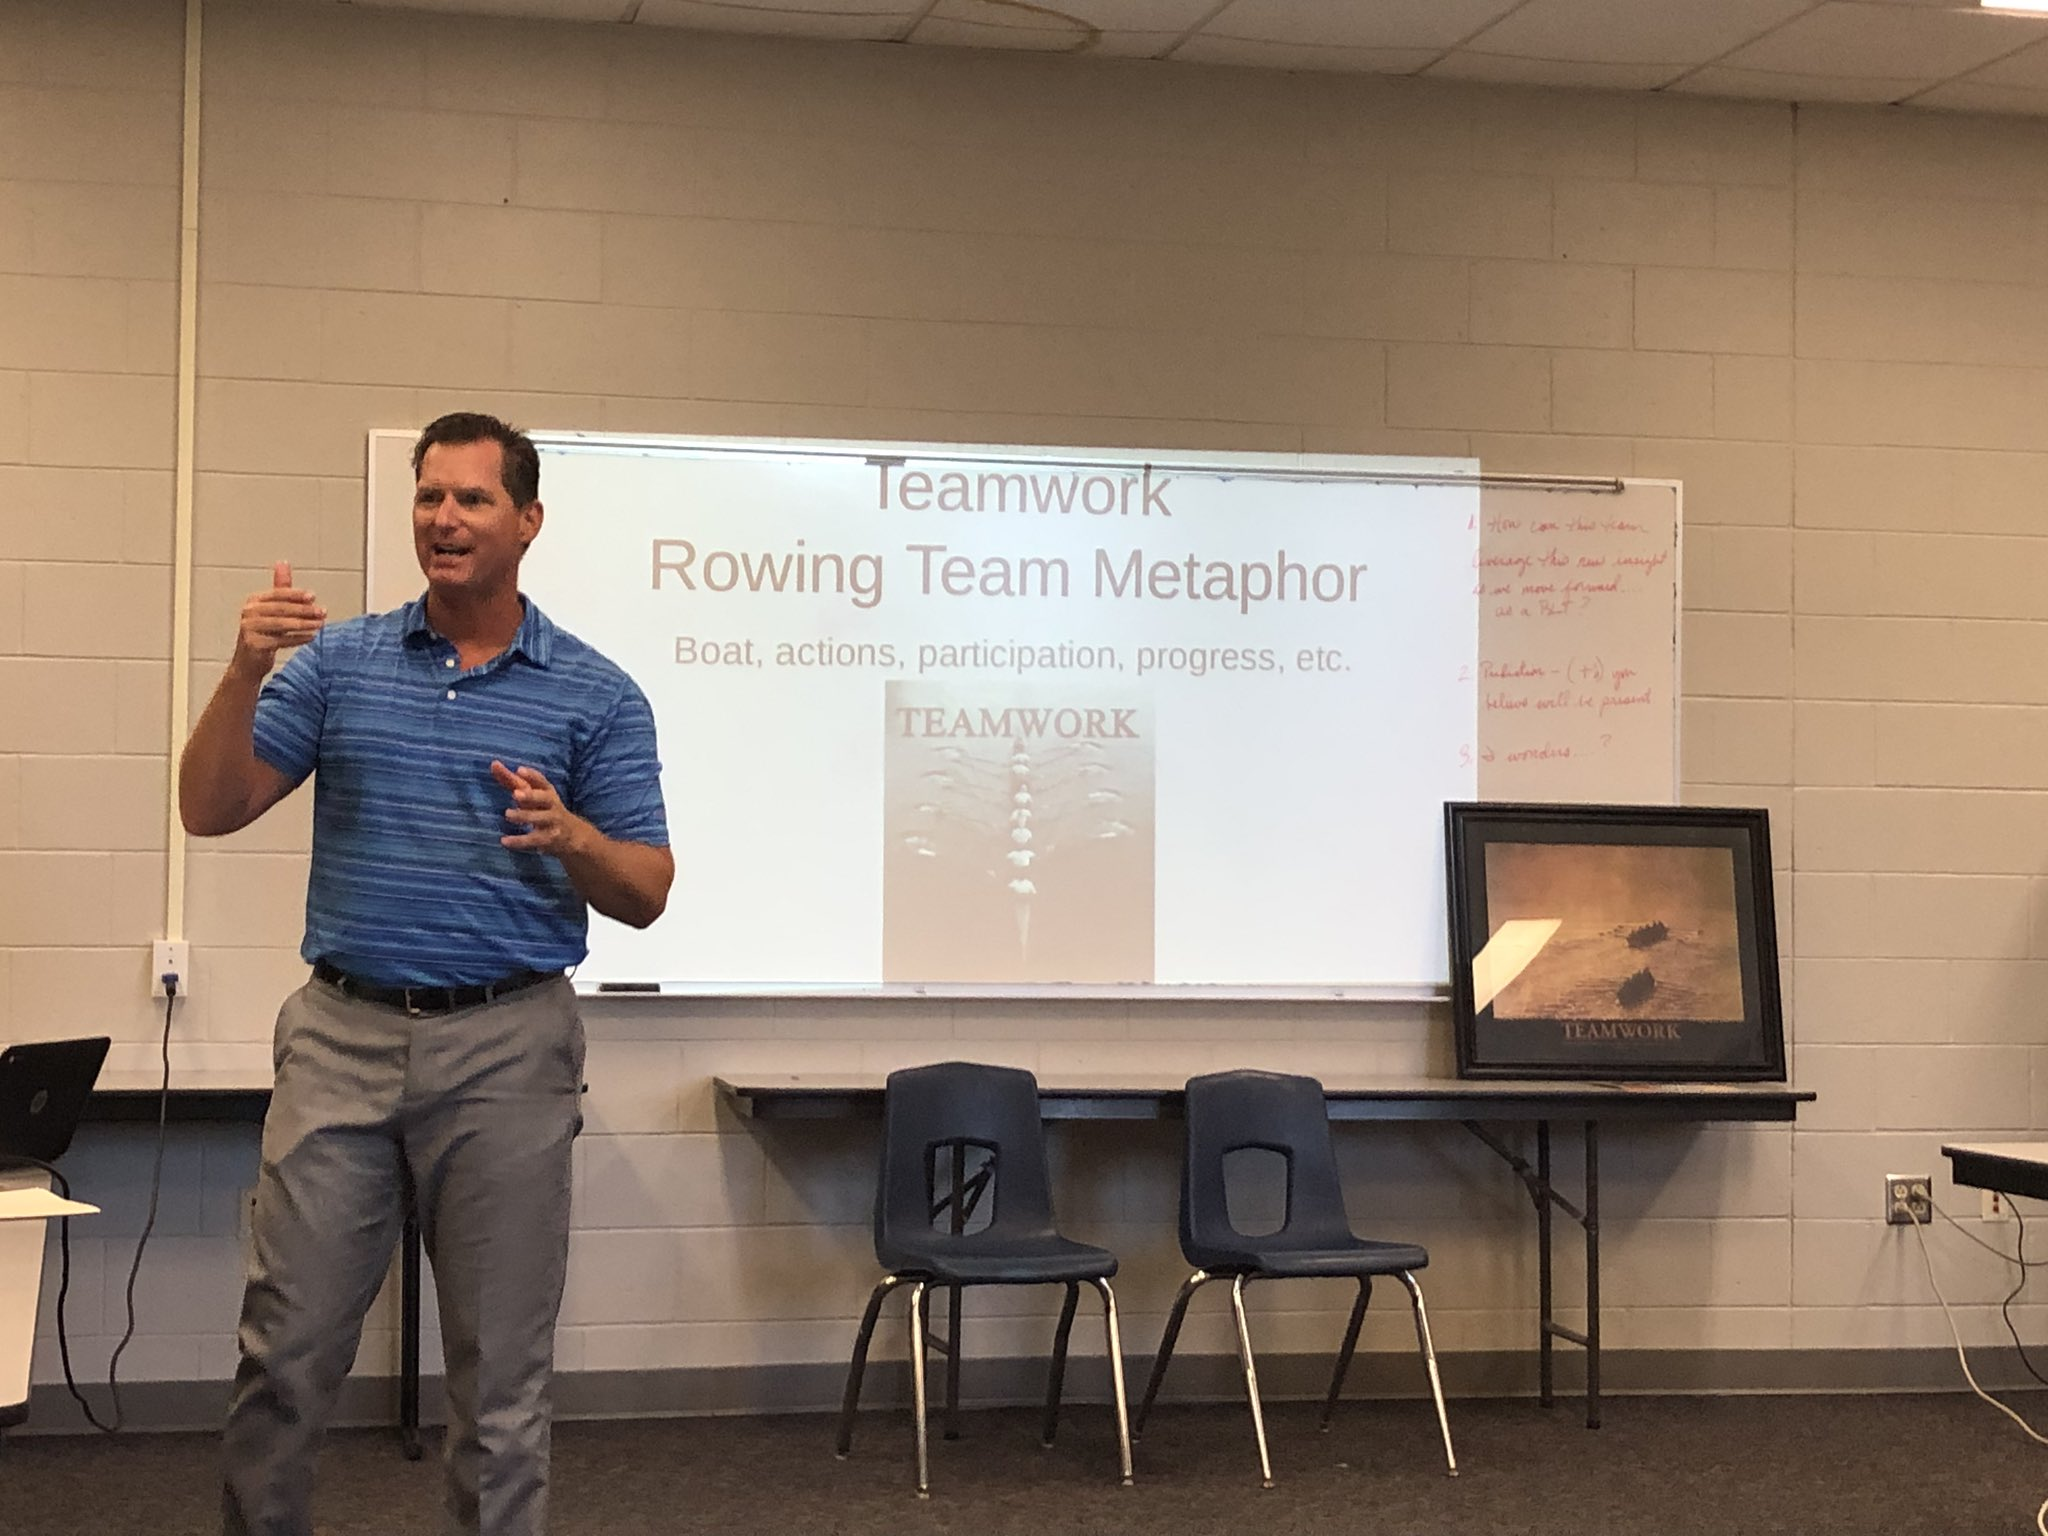 @LCHSPrincipals and BLT had a phenomenal day learning about the power of teamwork and capitalizing on our collective strengths! Thanks @CKSWoodward for the facilitation and Dr. Beyenhof for the inspiring metaphors! https://t.co/8nWAK0814T